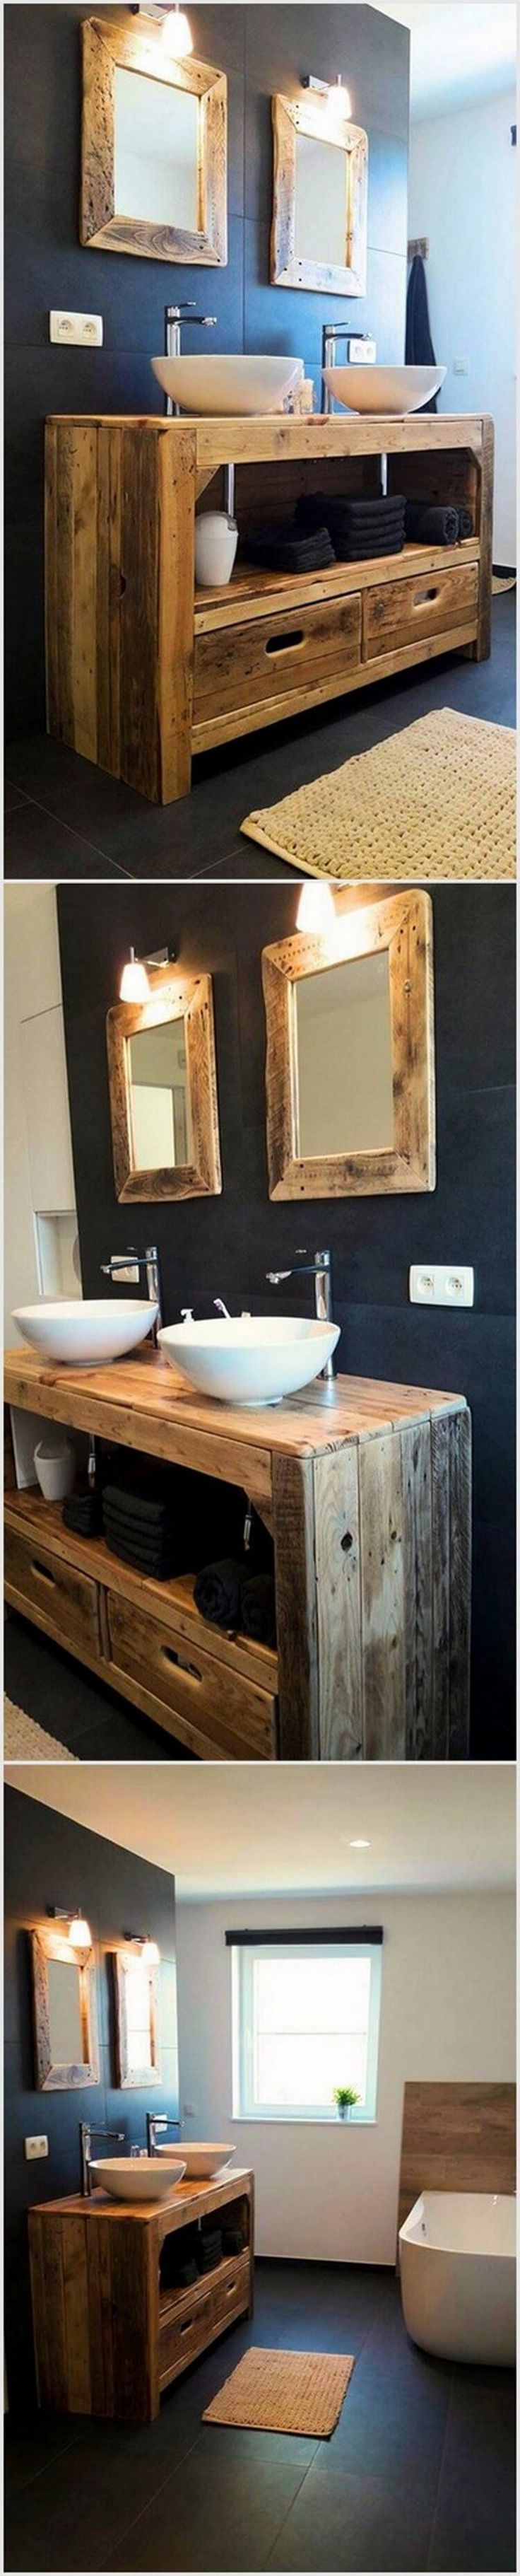 Best 25 reclaimed wood bars ideas on pinterest man cave for How to treat barn wood for bugs